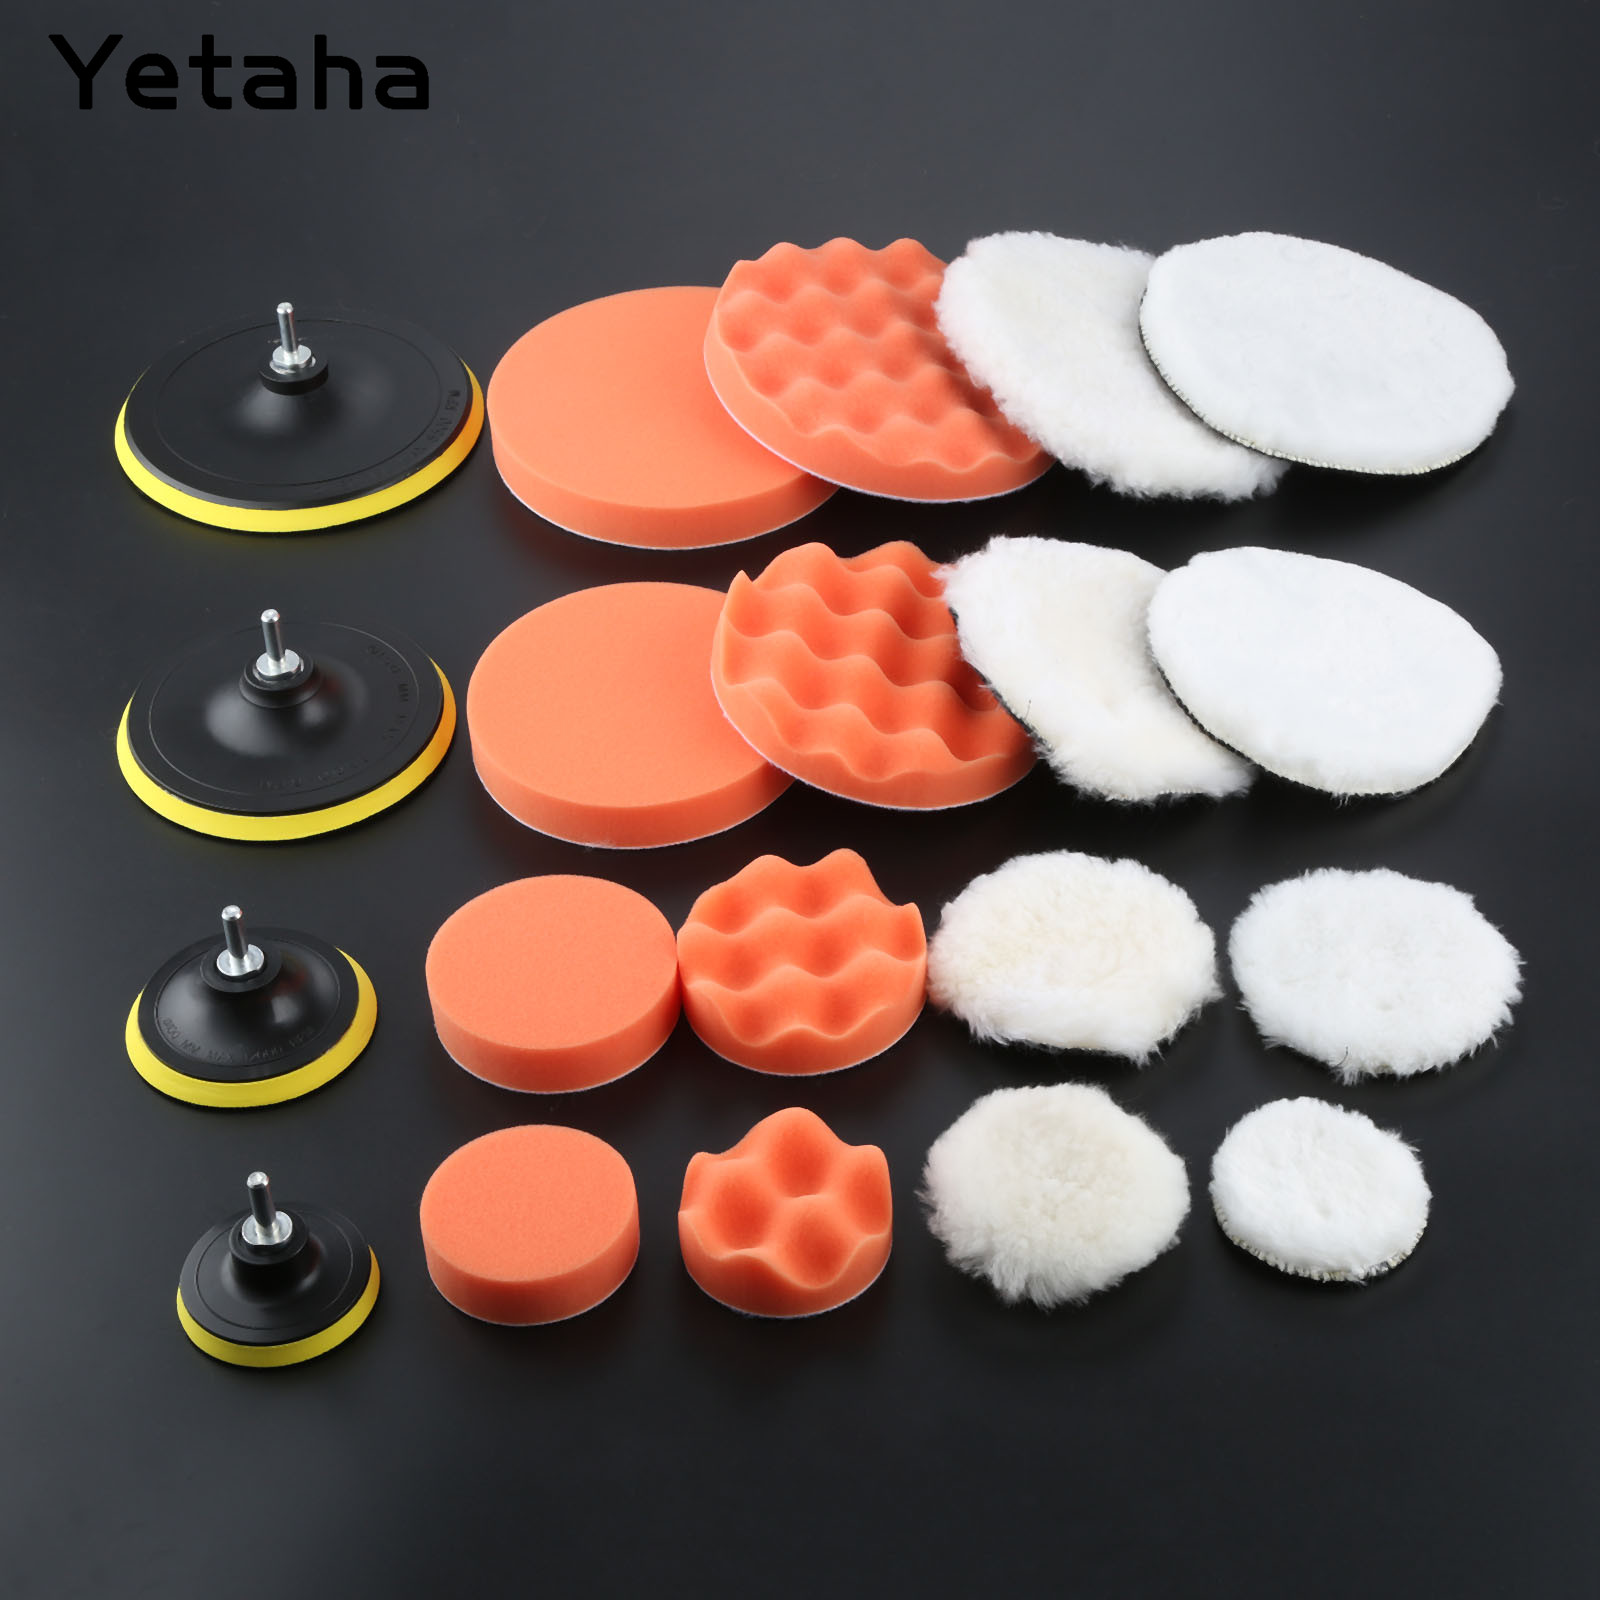 6Pcs 3/4/6/7 Inch Gross Polishing Buffing Pads Kit Car Polisher +M14 Drill Adapter Car Polish Sponge Wheel Kit Car Wash Cleaning